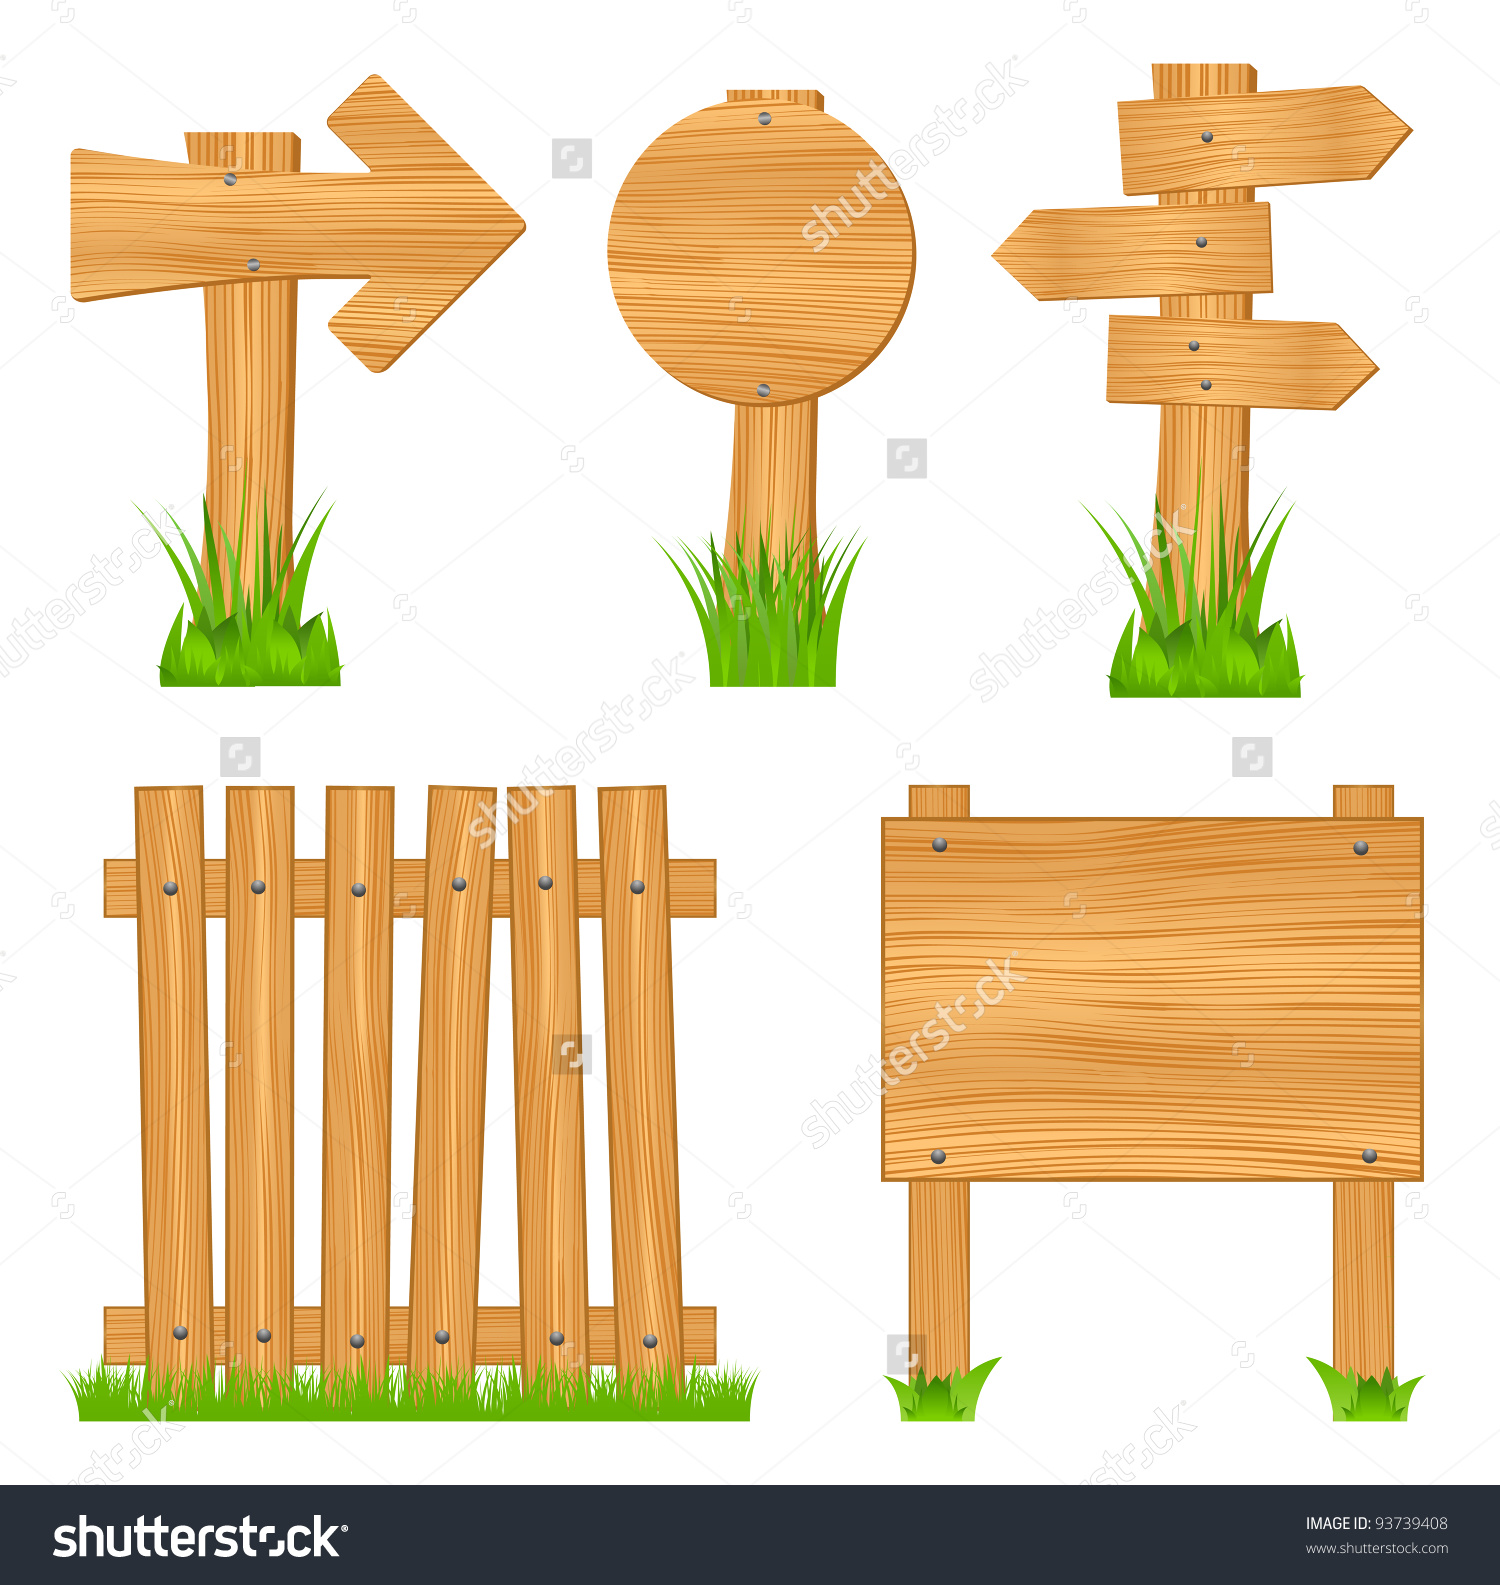 Wooden Arrow Signs Boards Fence Vector Stock Vector 93739408.